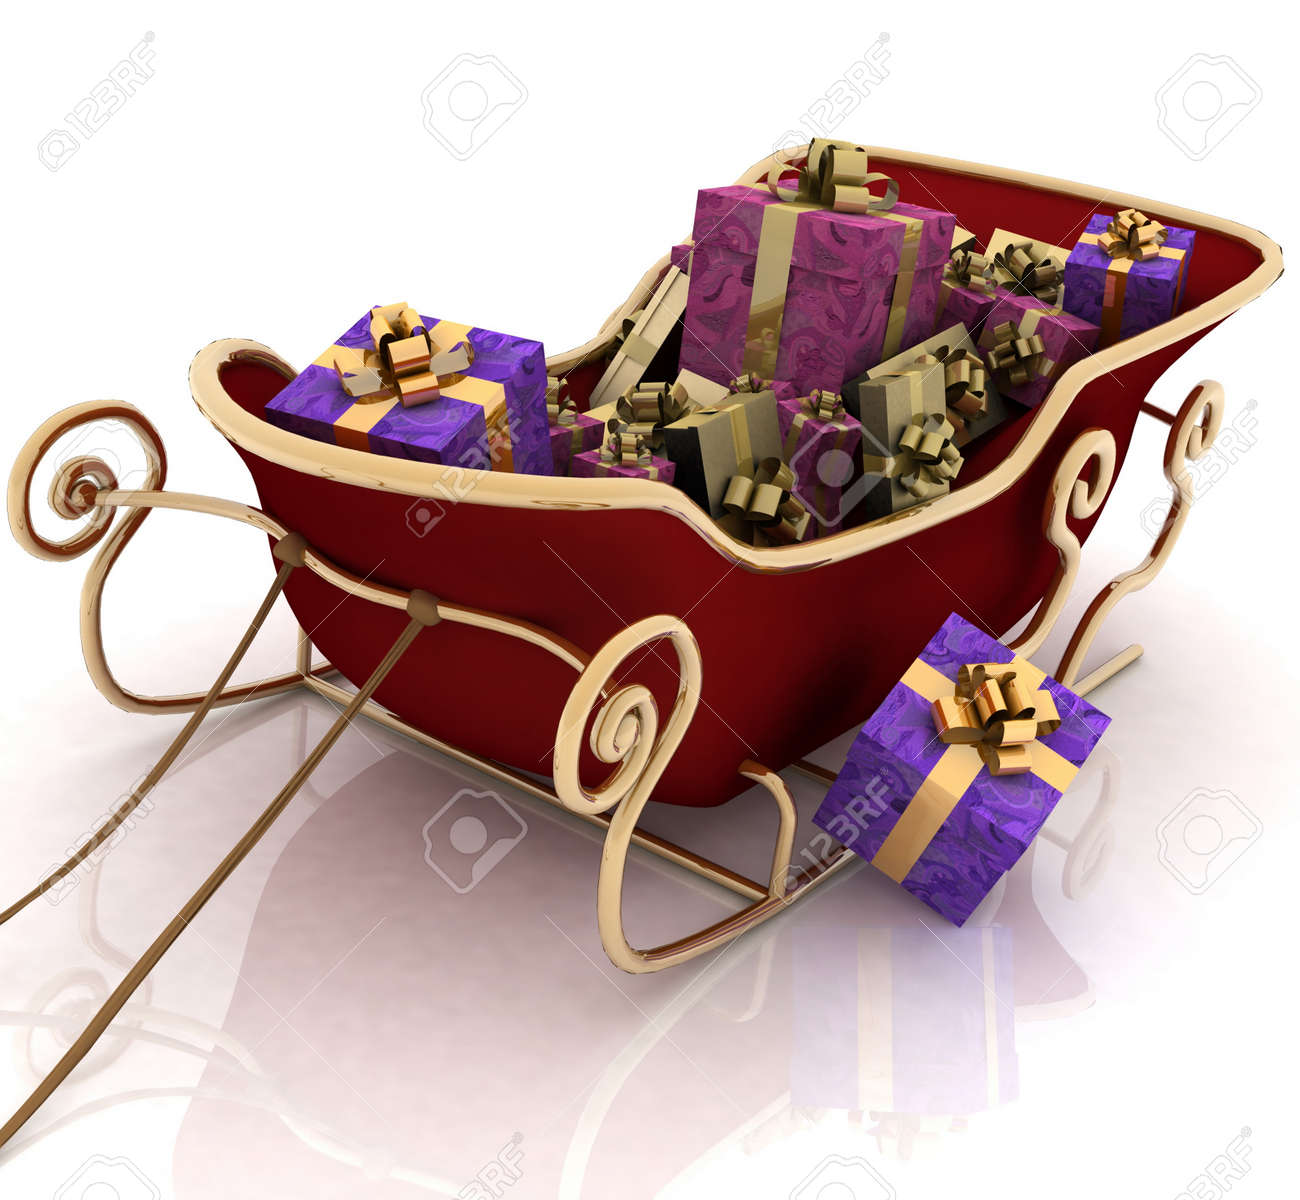 Christmas Santa sledge with gifts on a white background Stock Photo - 11846391